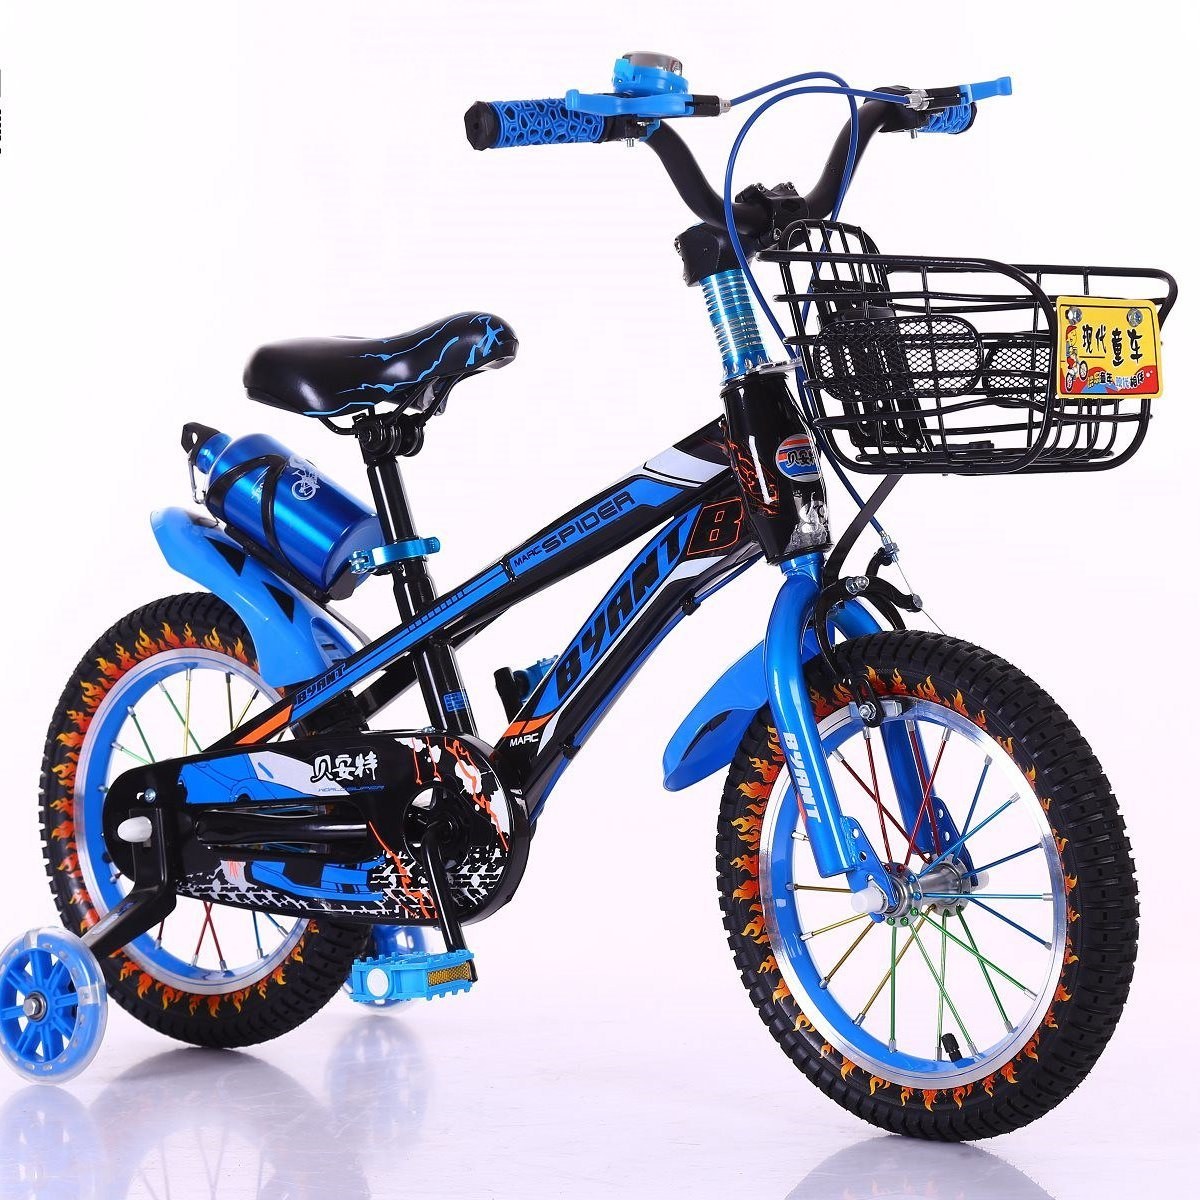 Bmx Bikes For Kids >> Hot Item Inch Kids Children Bike Kids Bicycle Bmx Bikes Kt Bk 001